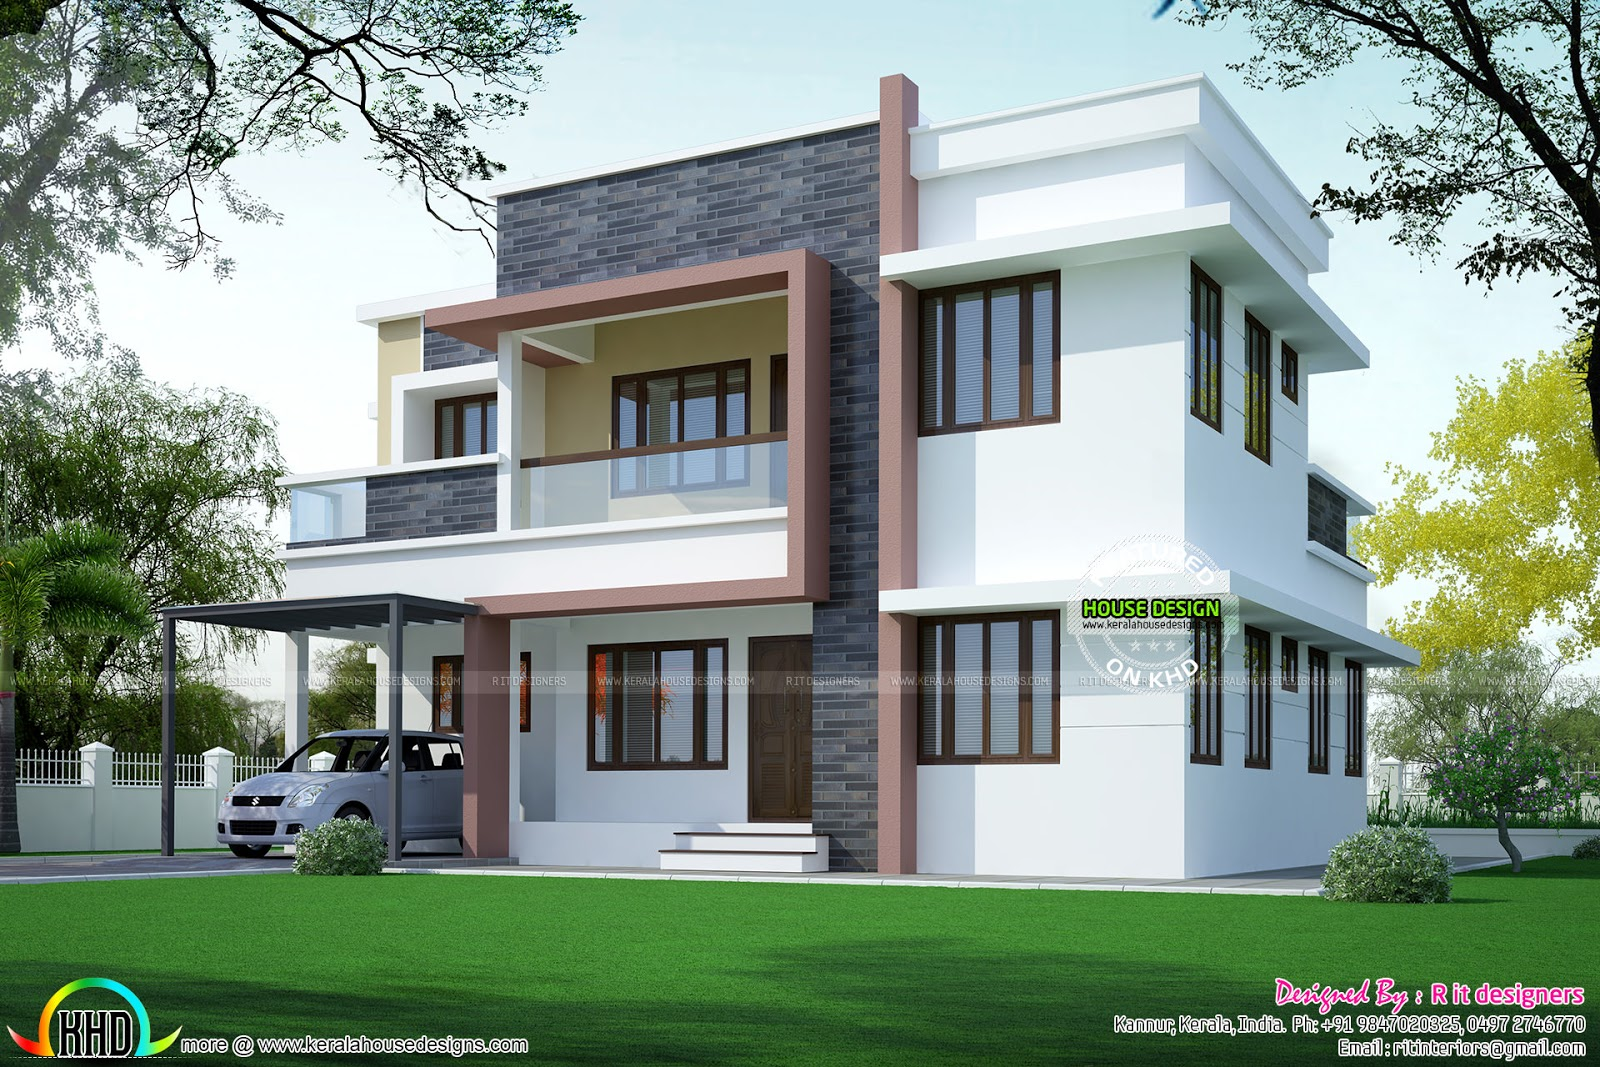 Simple Home Plan In Modern Style Kerala Home Design And Floor Plans: easy home design program